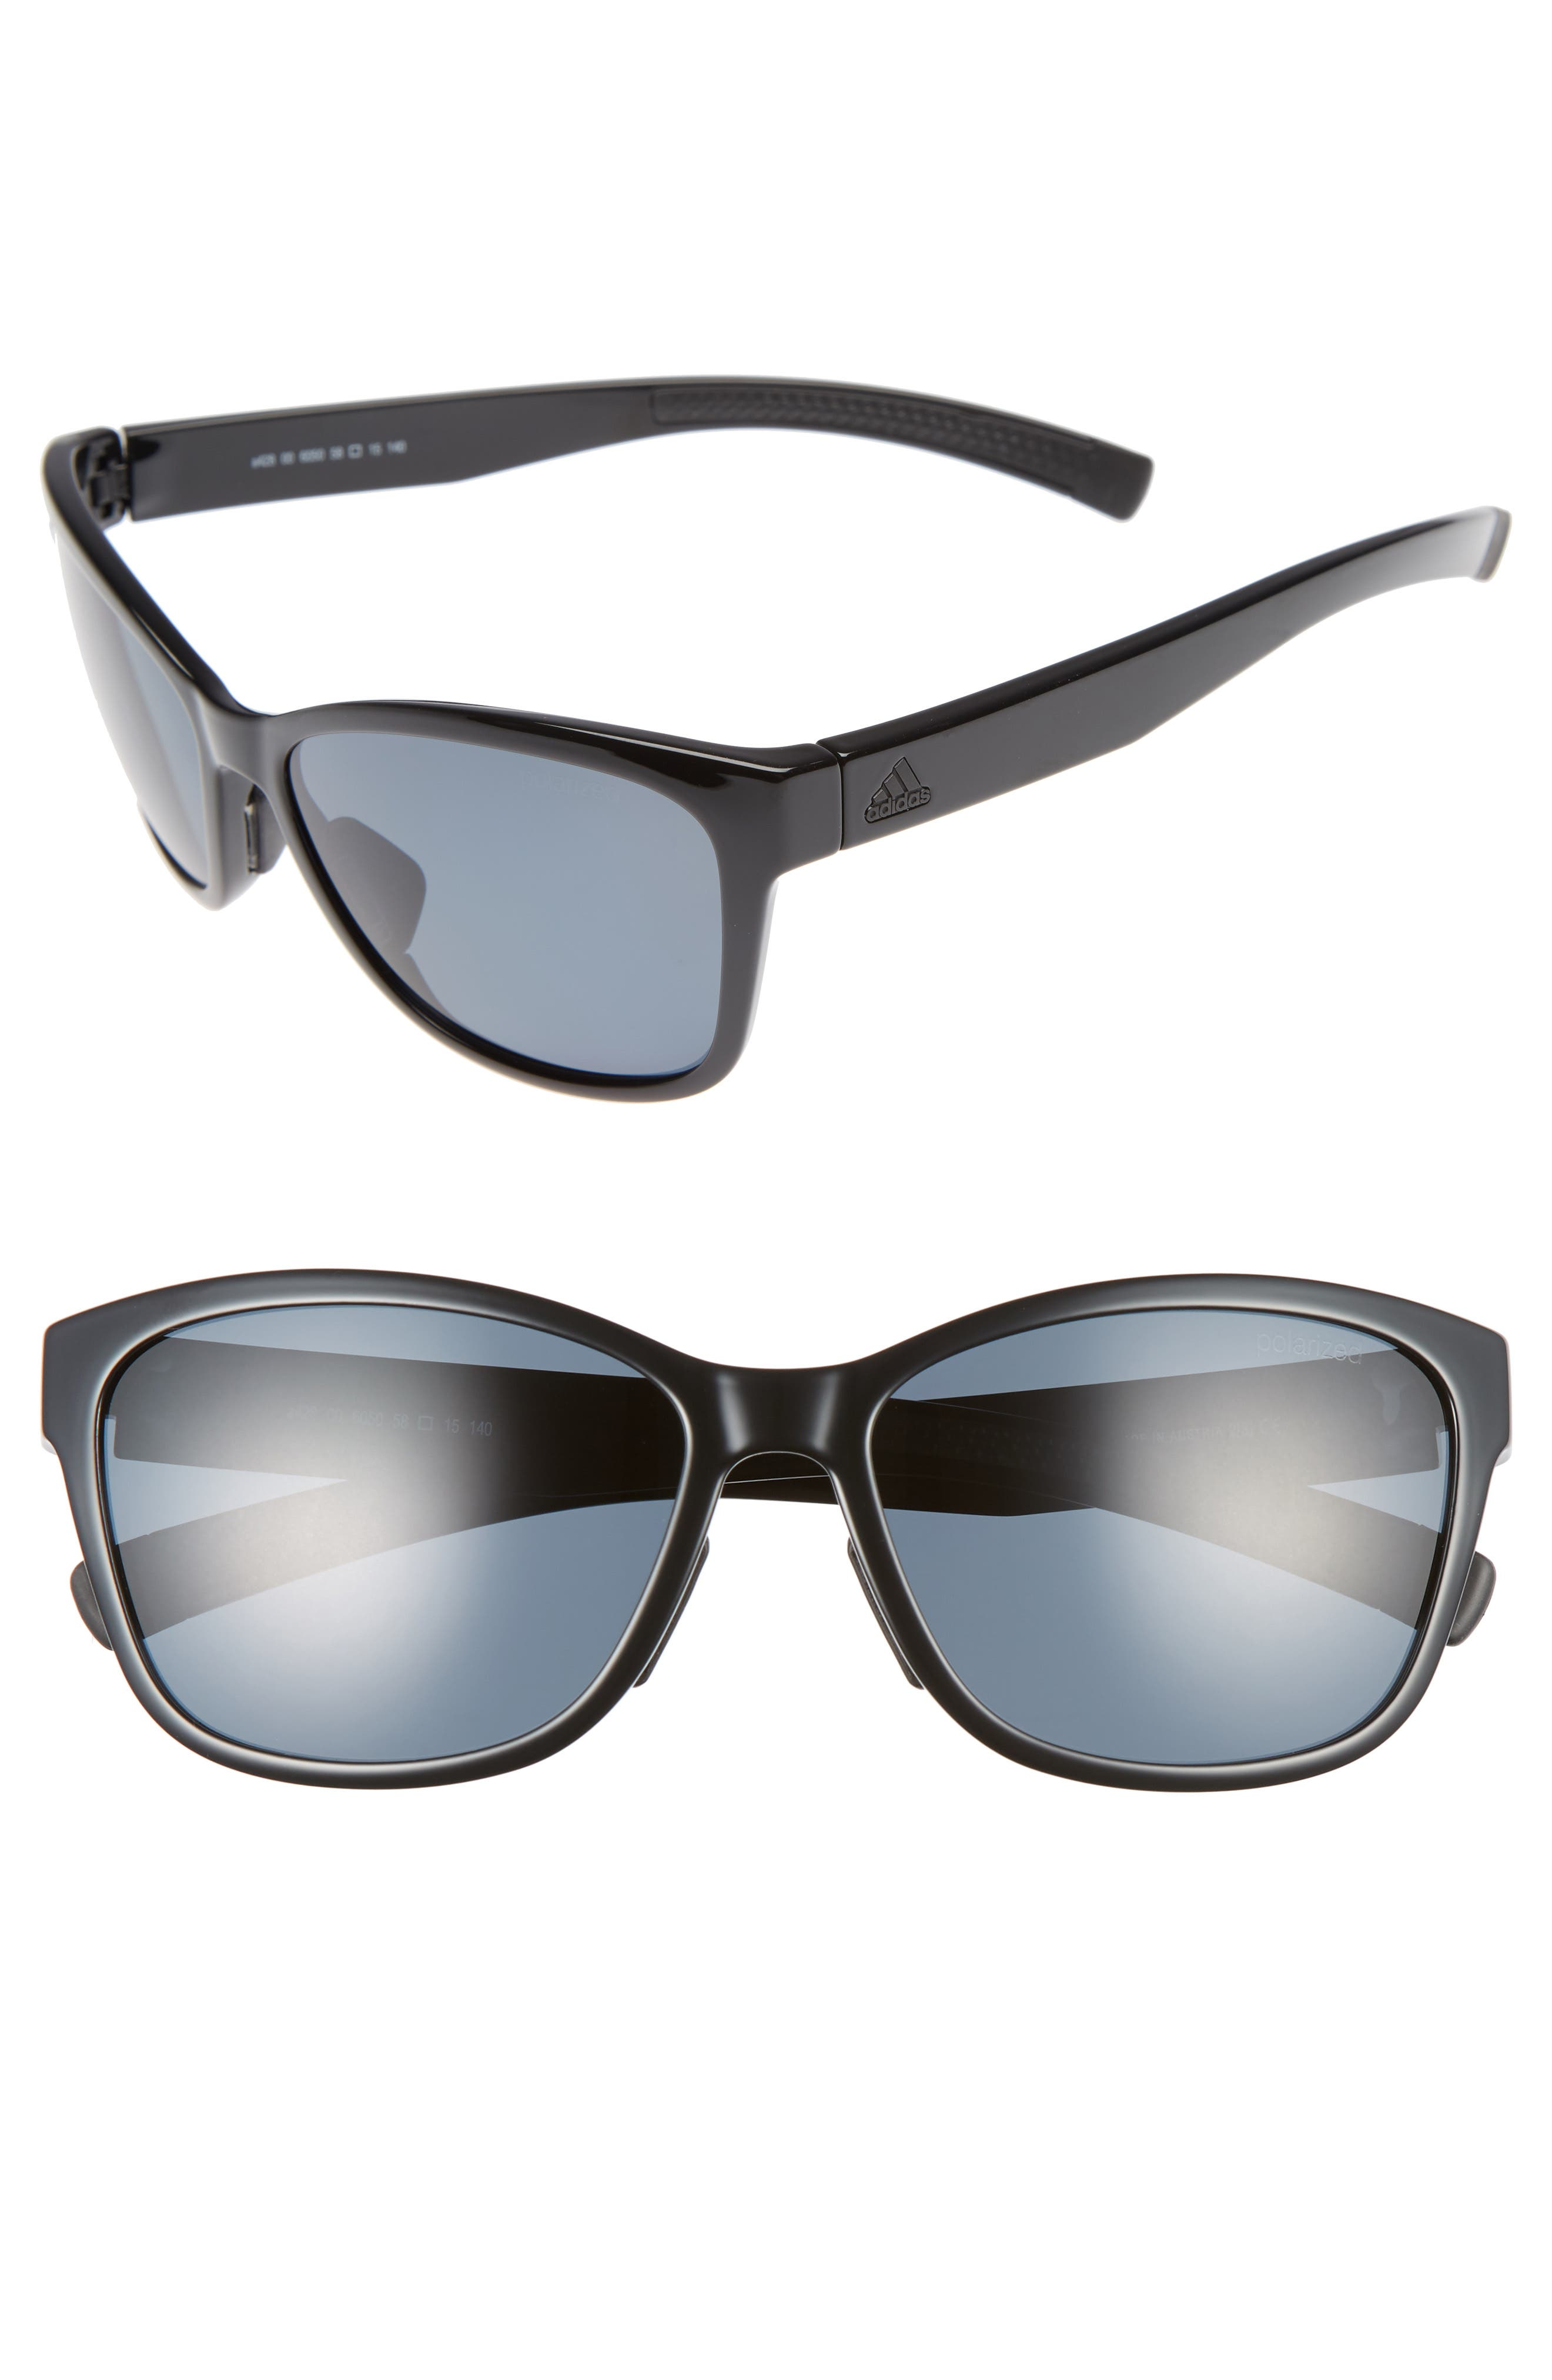 Excalate 58mm Polarized Sunglasses,                         Main,                         color,